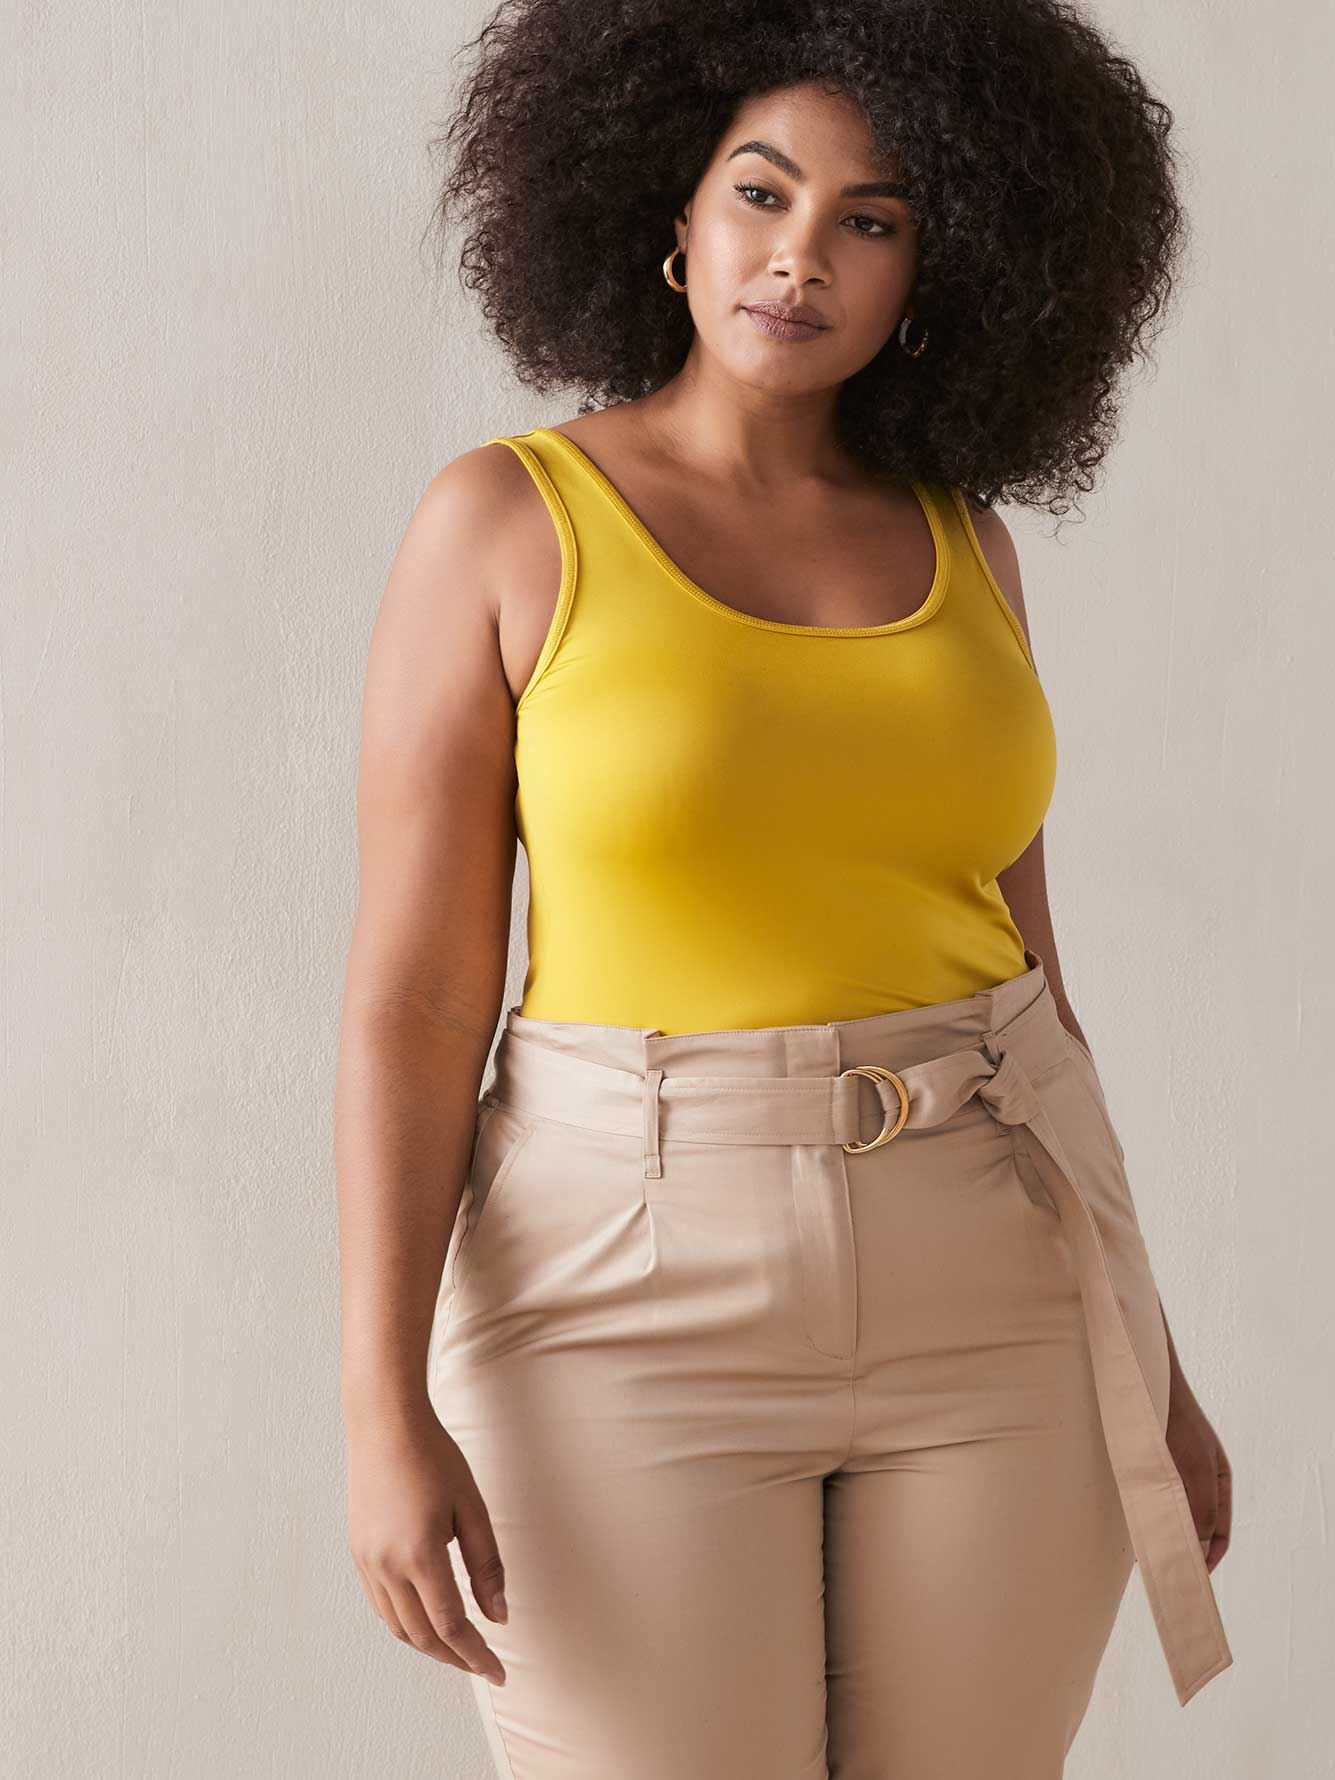 b92ca15836b82 Women Plus Size Tops, Blouses & Shirts Online | Addition Elle Canada